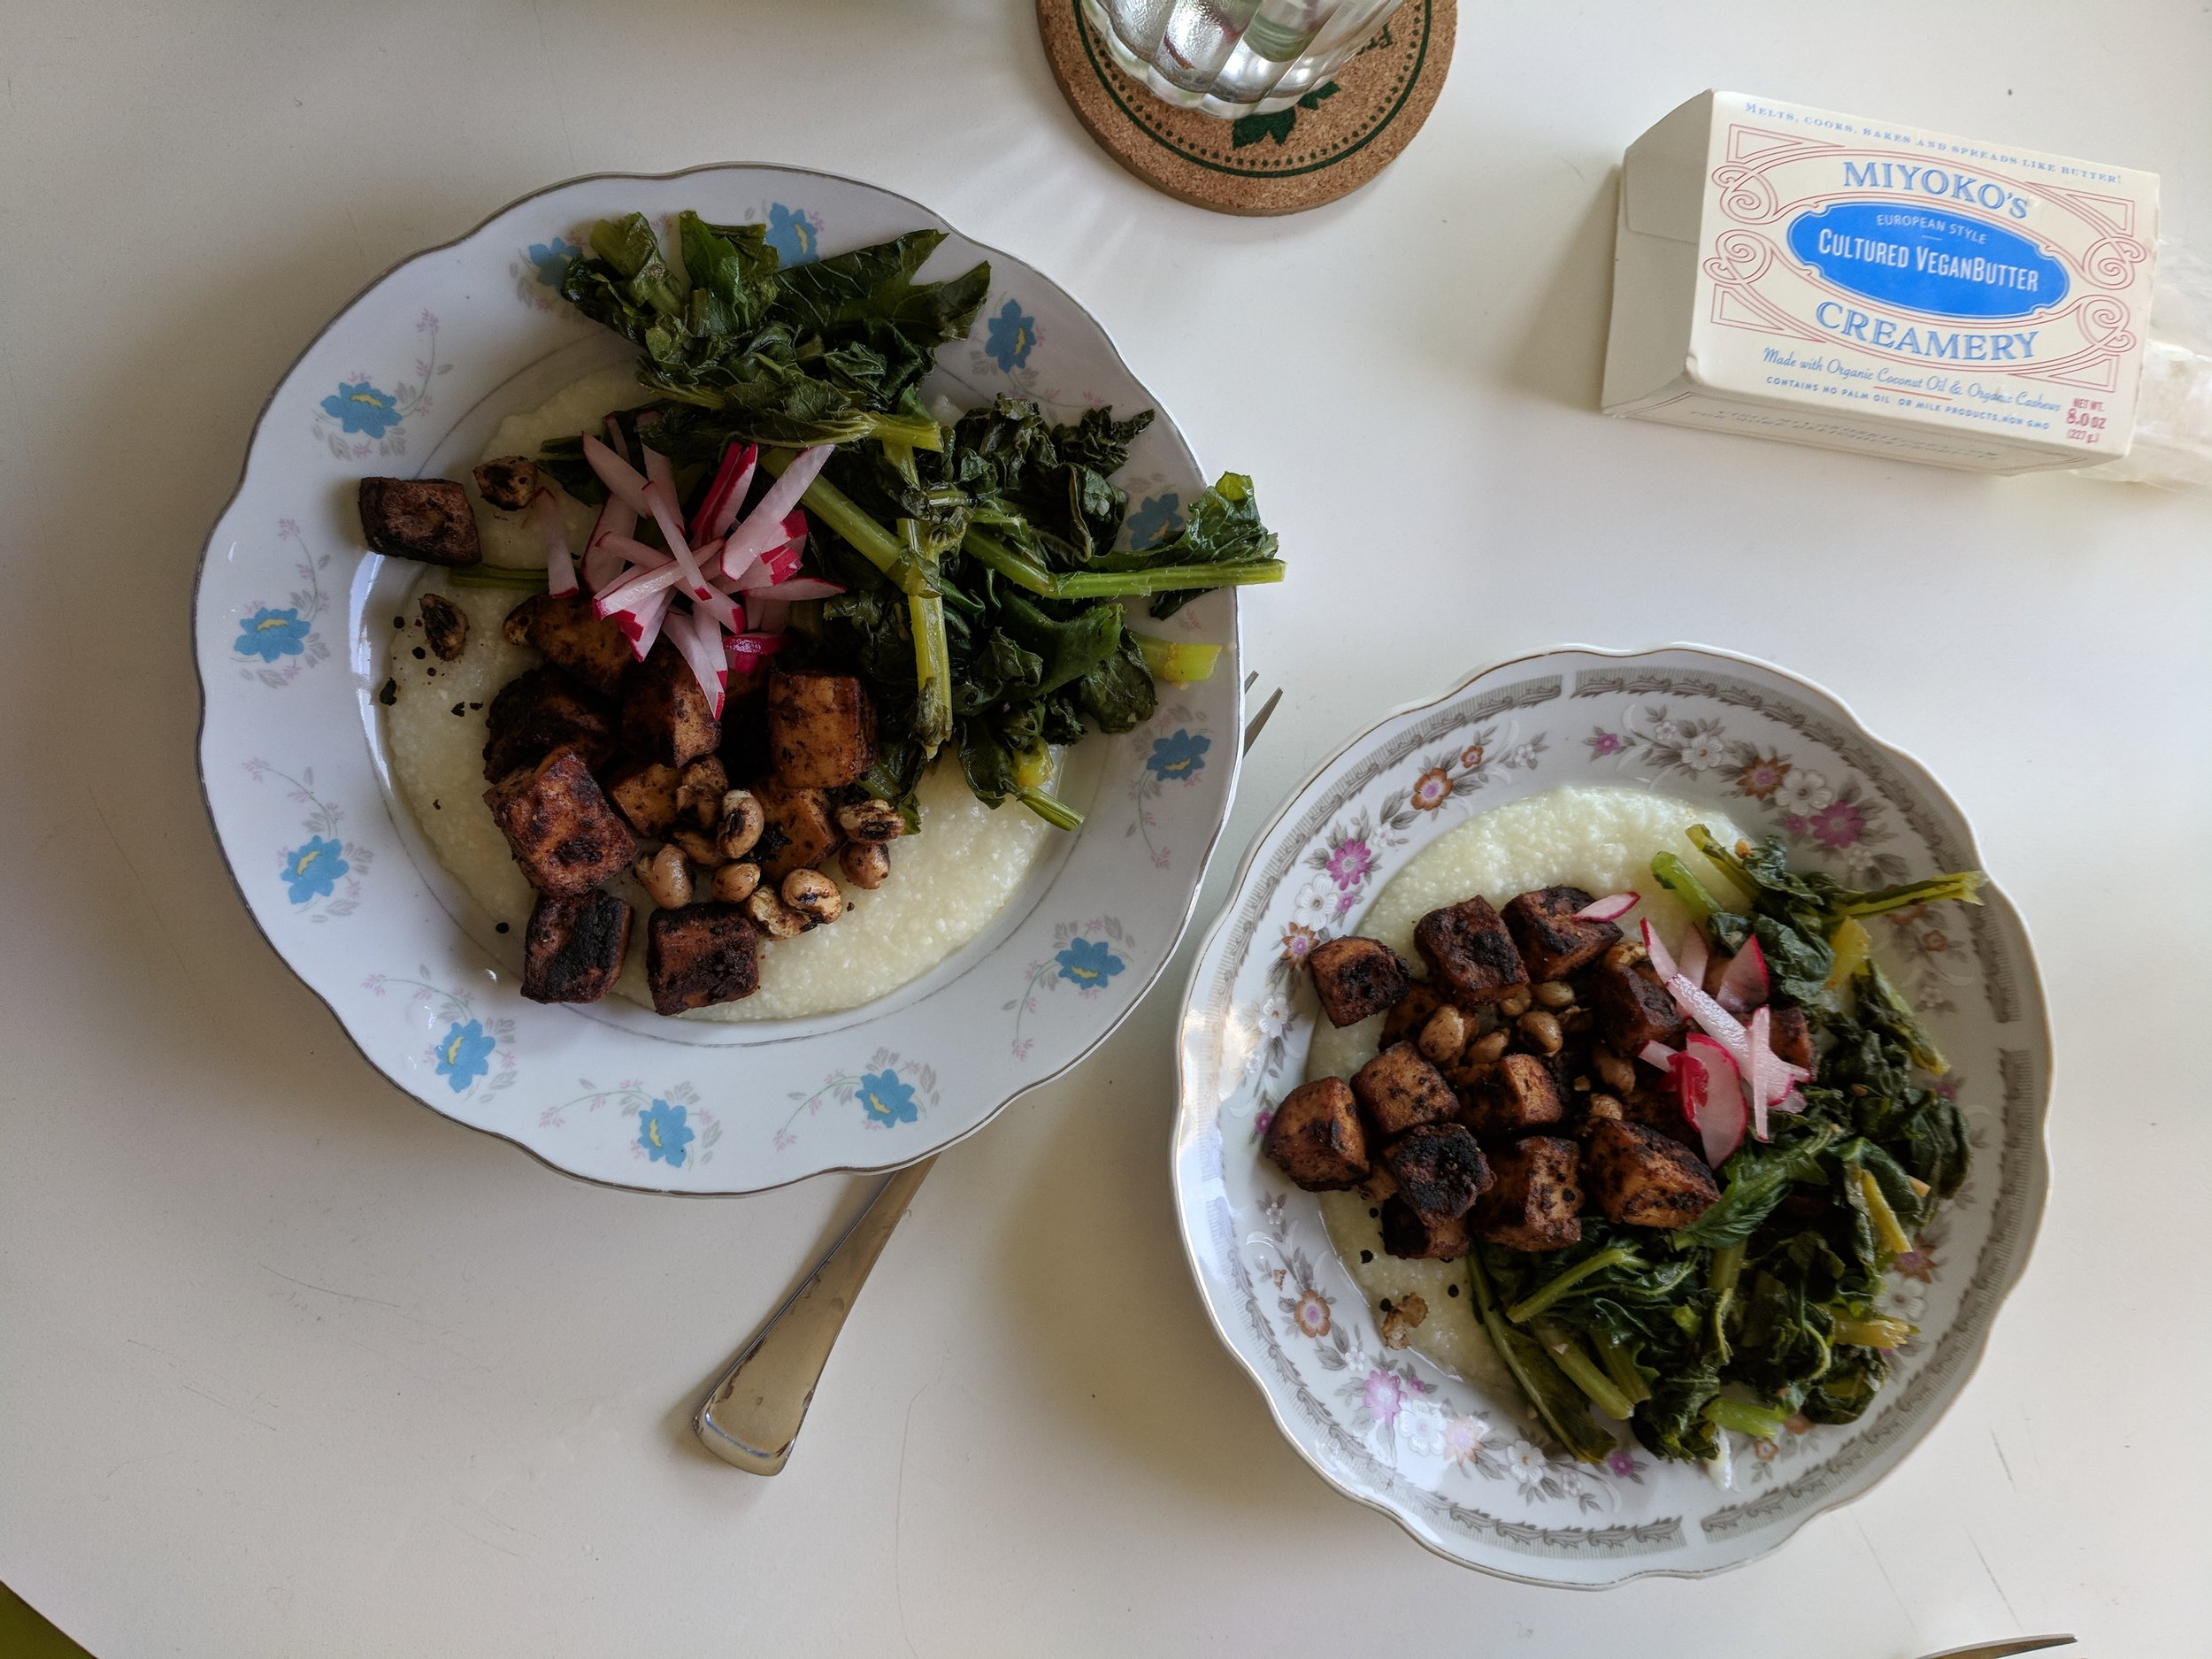 Miyoko's butter and a white grits & baked tofu & greens & radish AKA I didn't come across a photo of the homemade butter